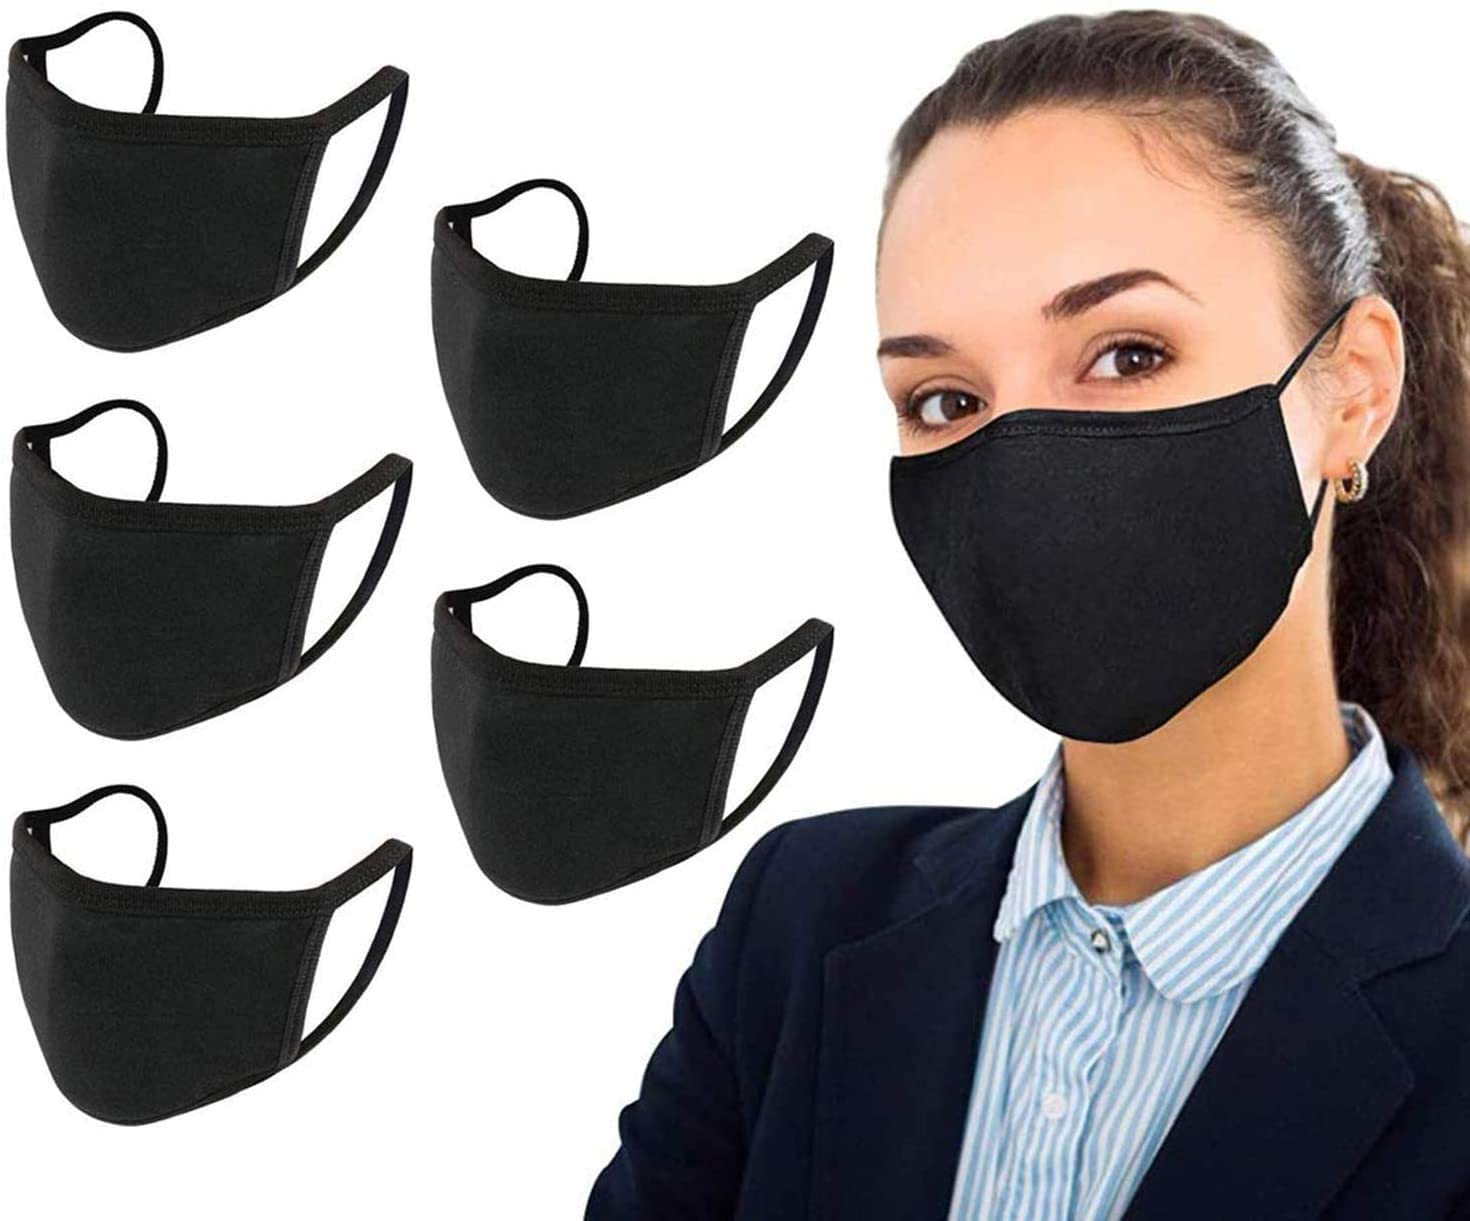 5 Pack Fashion Full Protection Cotton Face Bandanas,Unisex Black Reusable Fashionable and Washable Dust Cotton Fabric,Indoors Outdoors